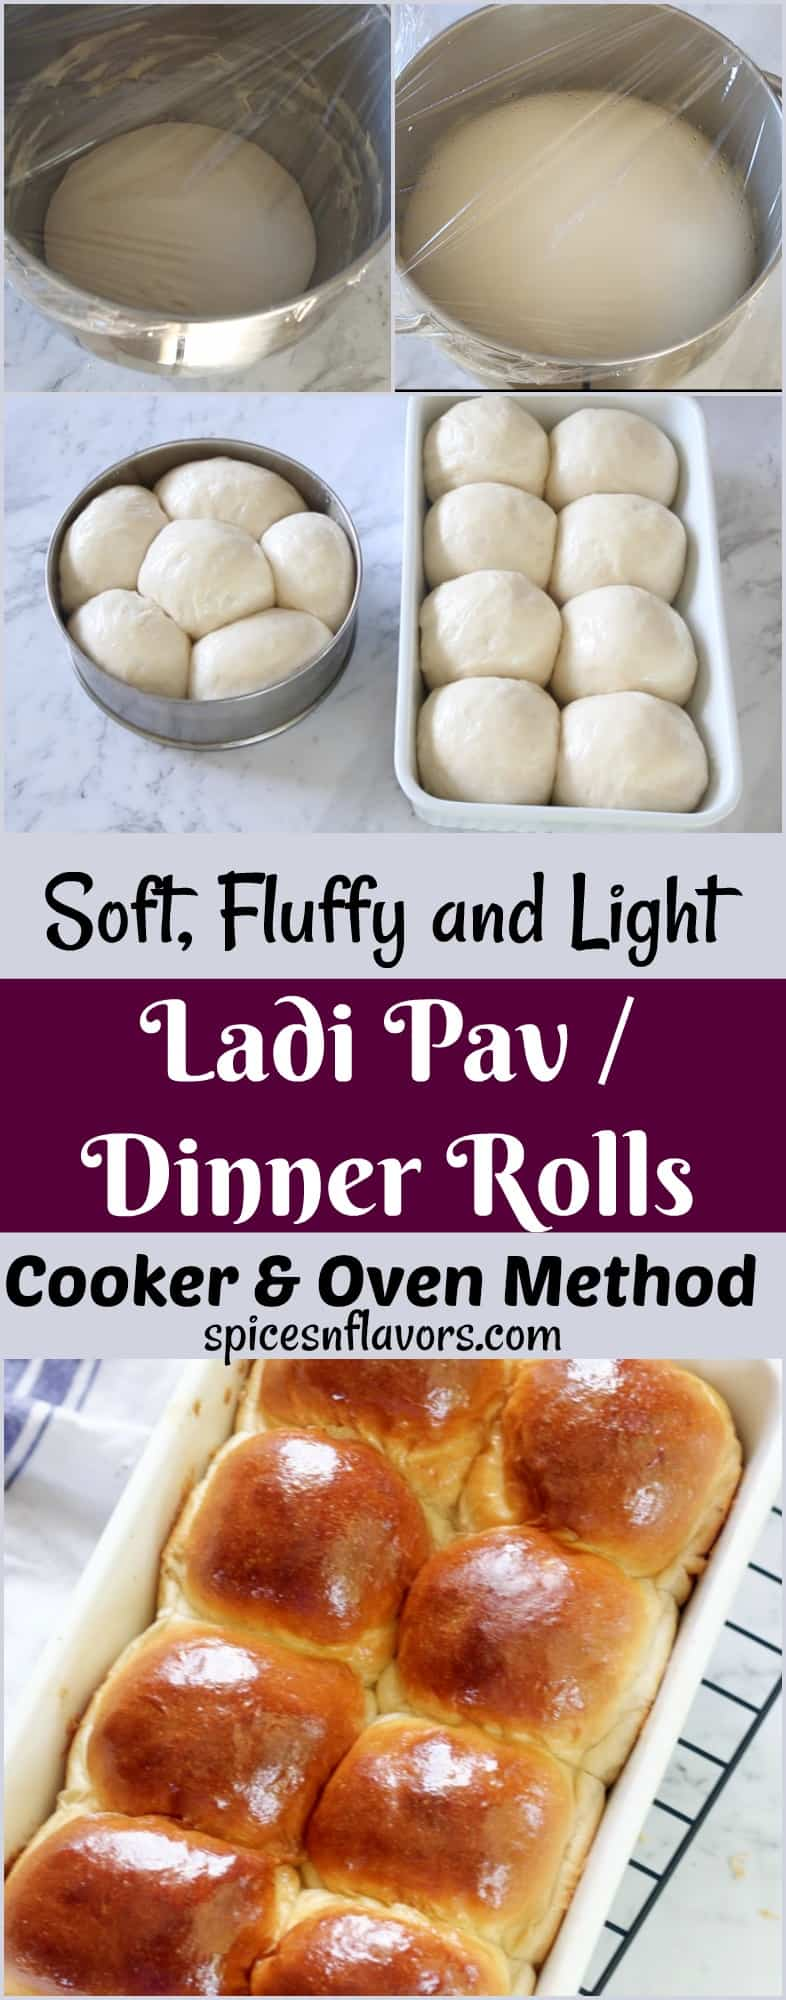 laadi pav ladi pav dinner rolls how to make ladi pav in cooker how to make soft and fluffy dinner rolls how to shape dinner rolls indian bread #indianbread #cookerladipav #ladipav #pao #laadipav #dinnerrolls